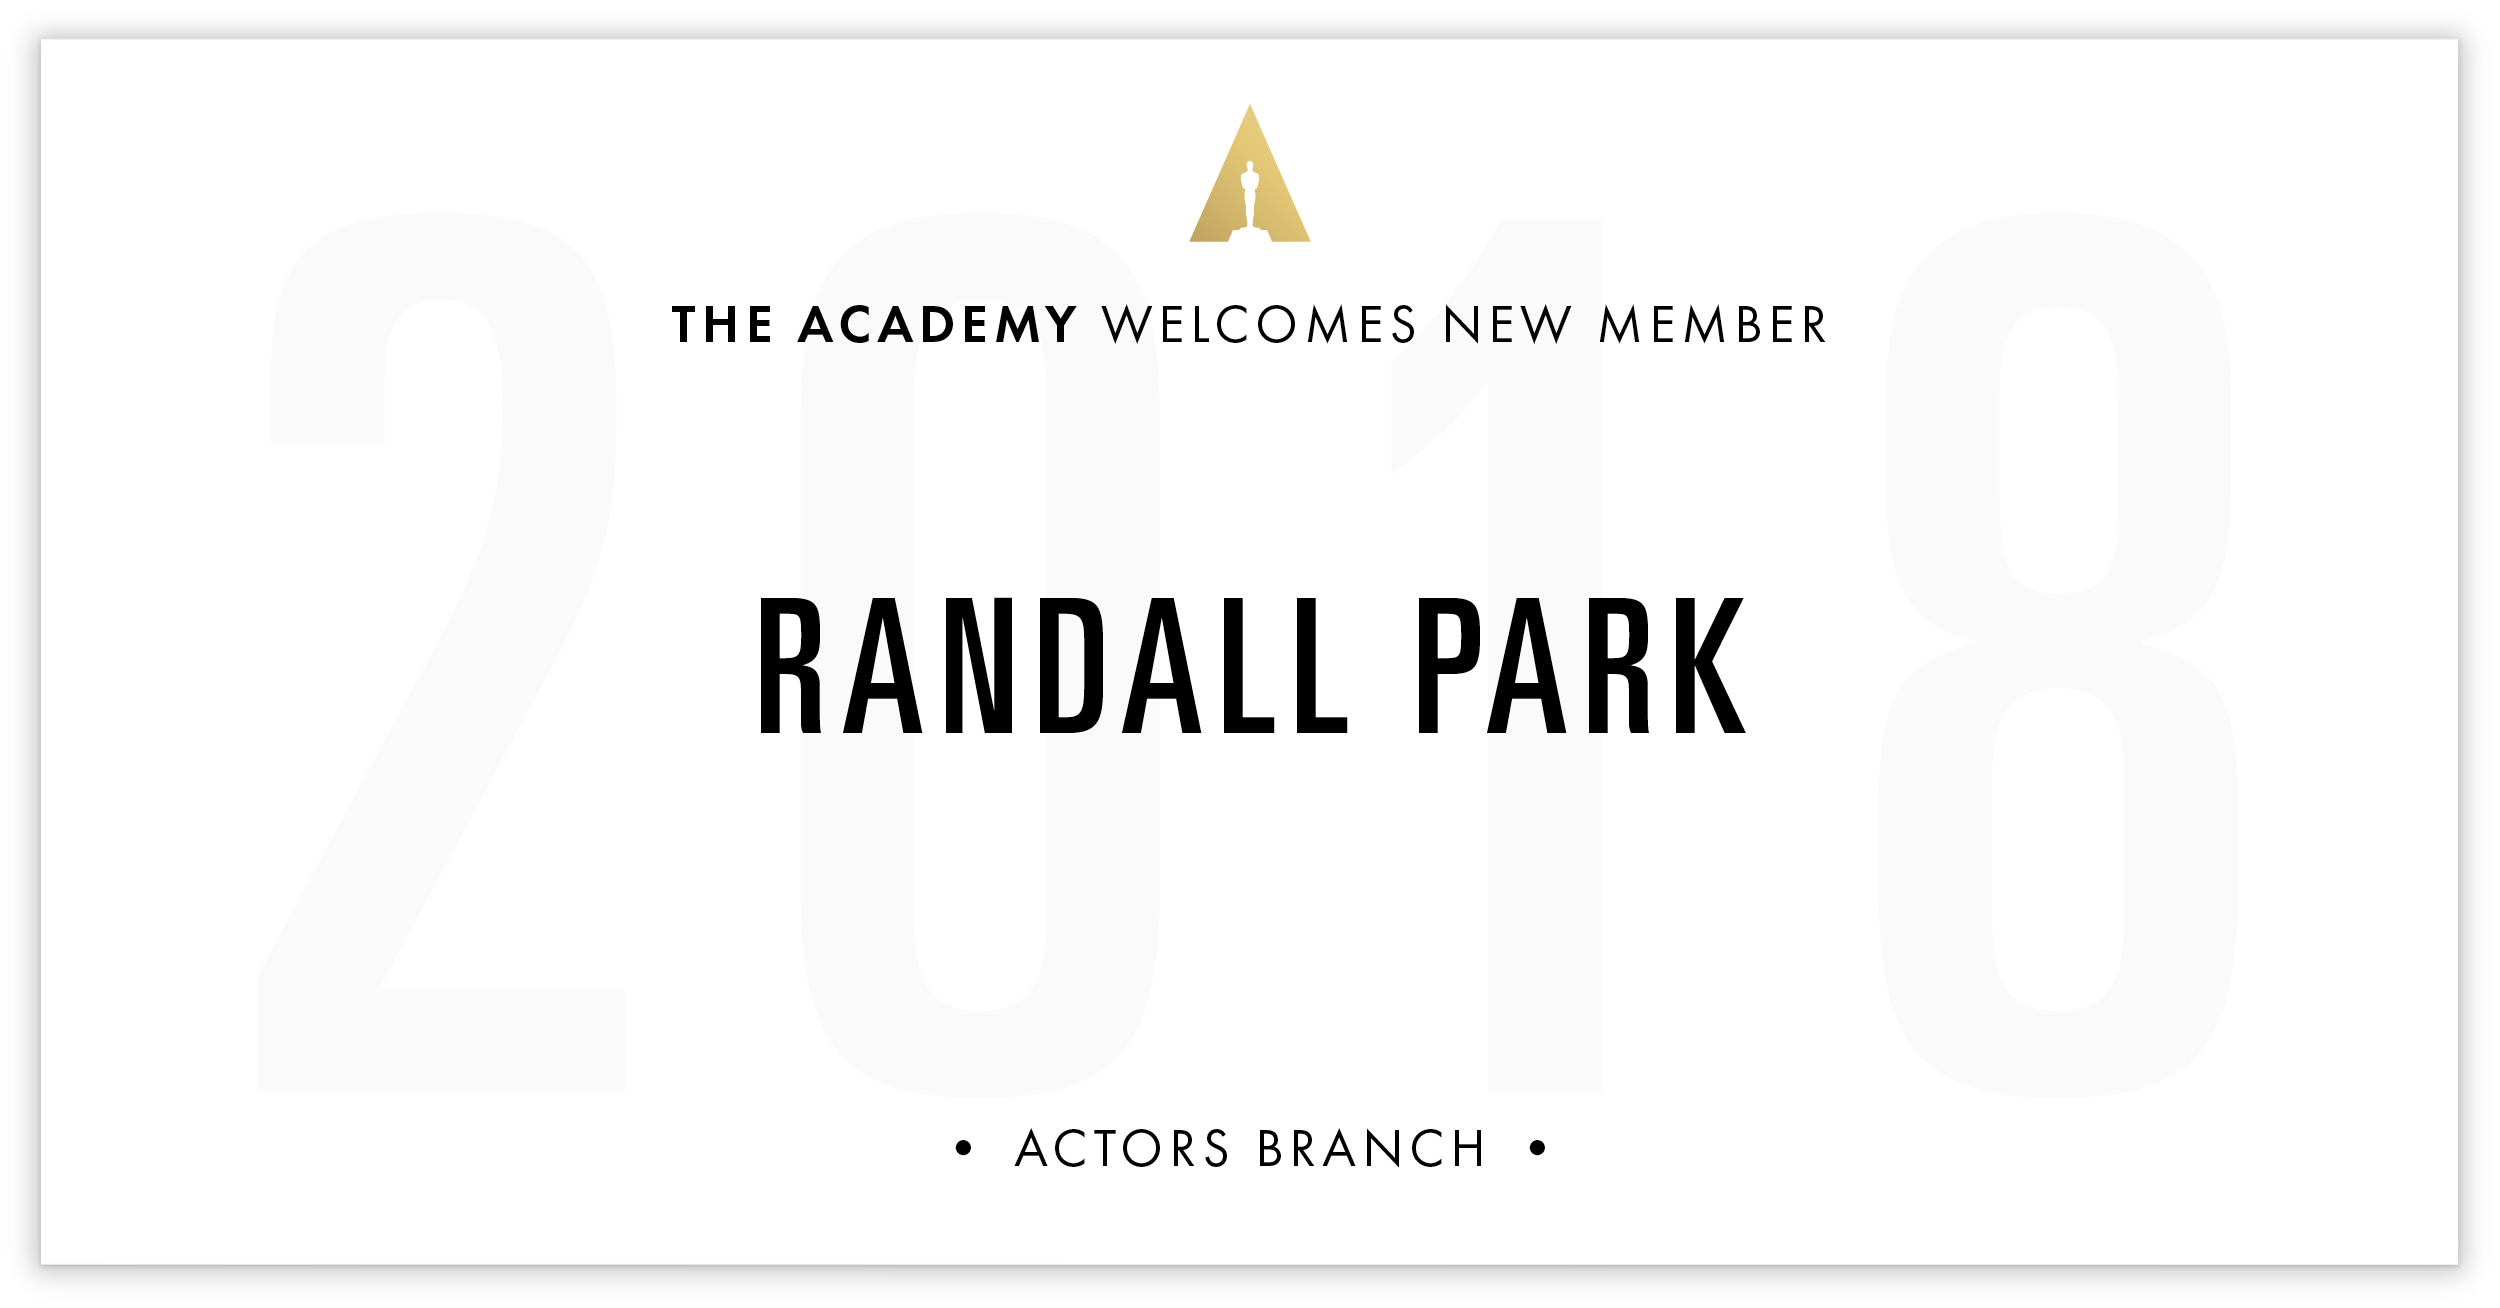 Randall Park is invited!